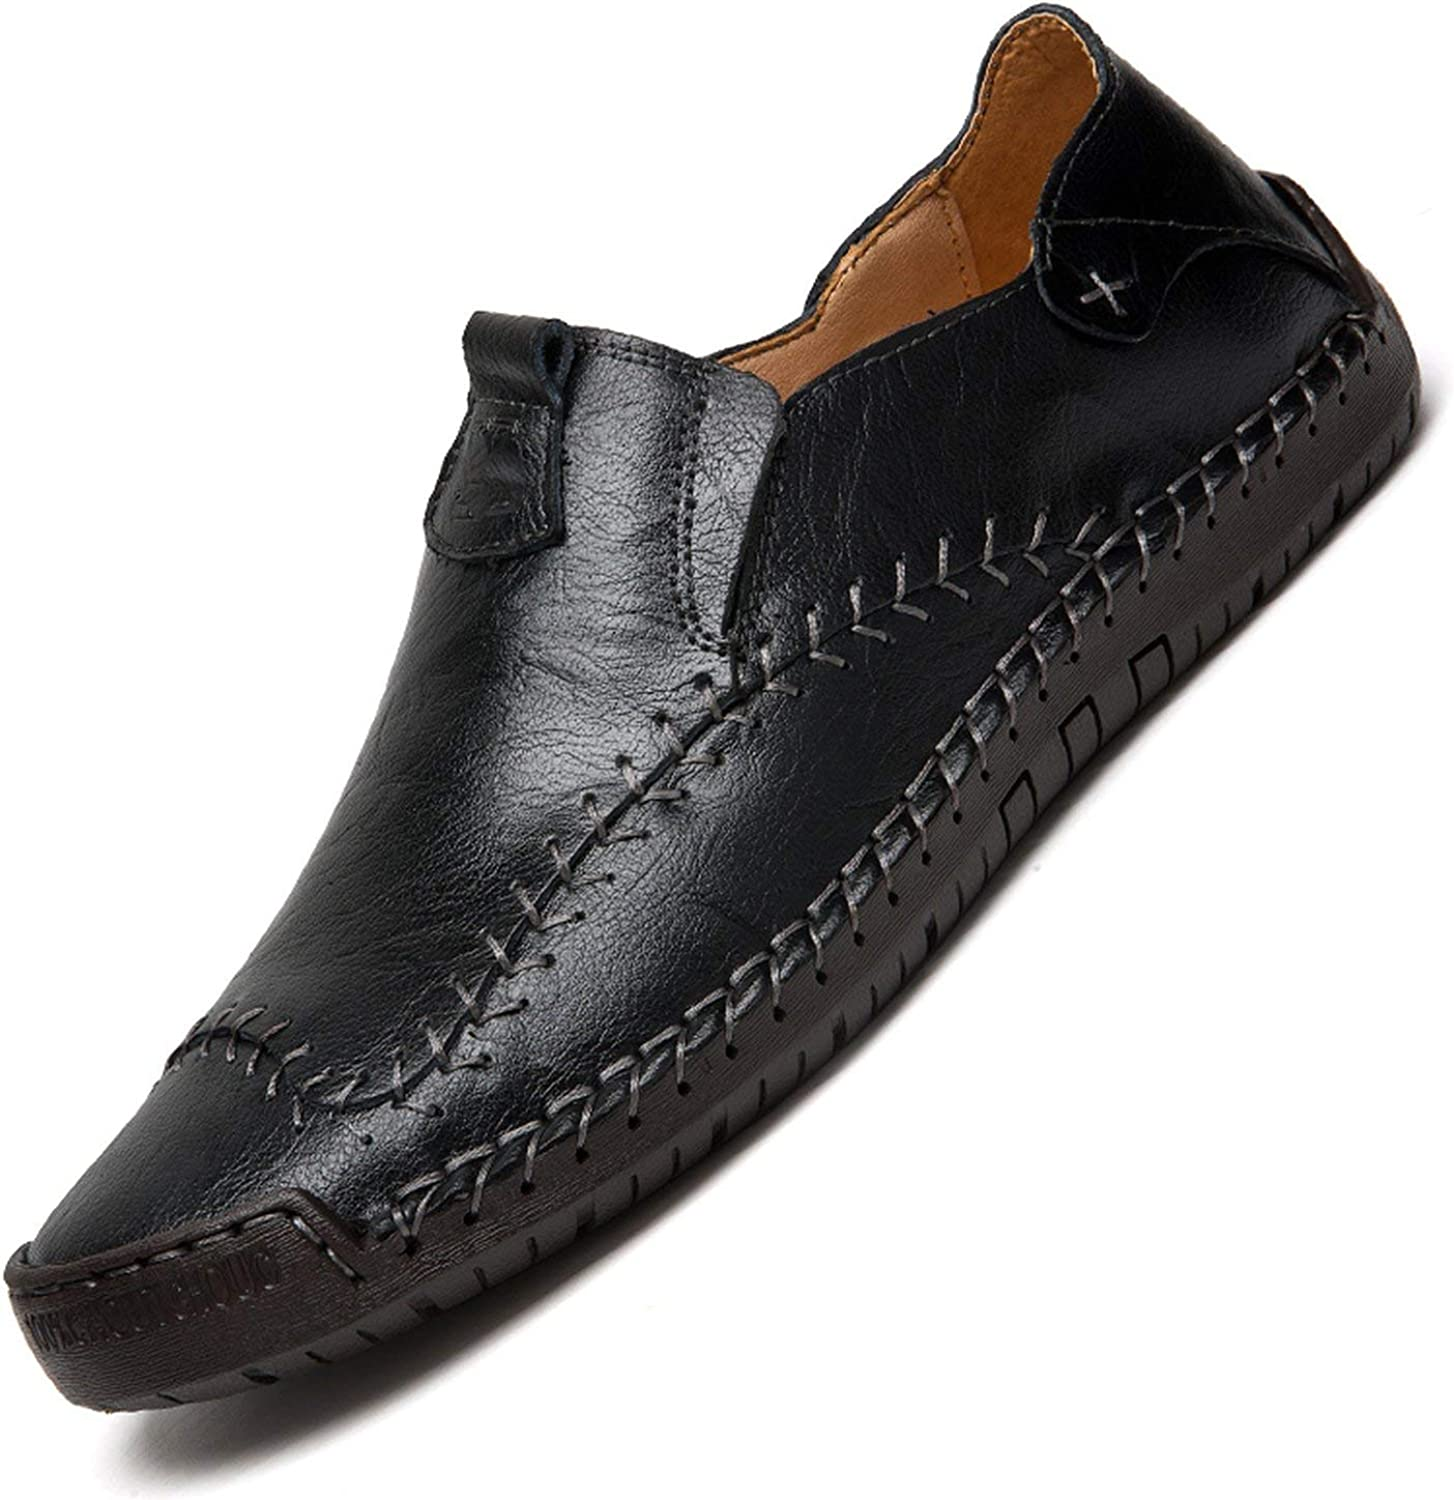 OH WHY Men's Genuine Leather Loafers shoes Handmade Soft Breathable Moccasins Flats Slipe On shoes